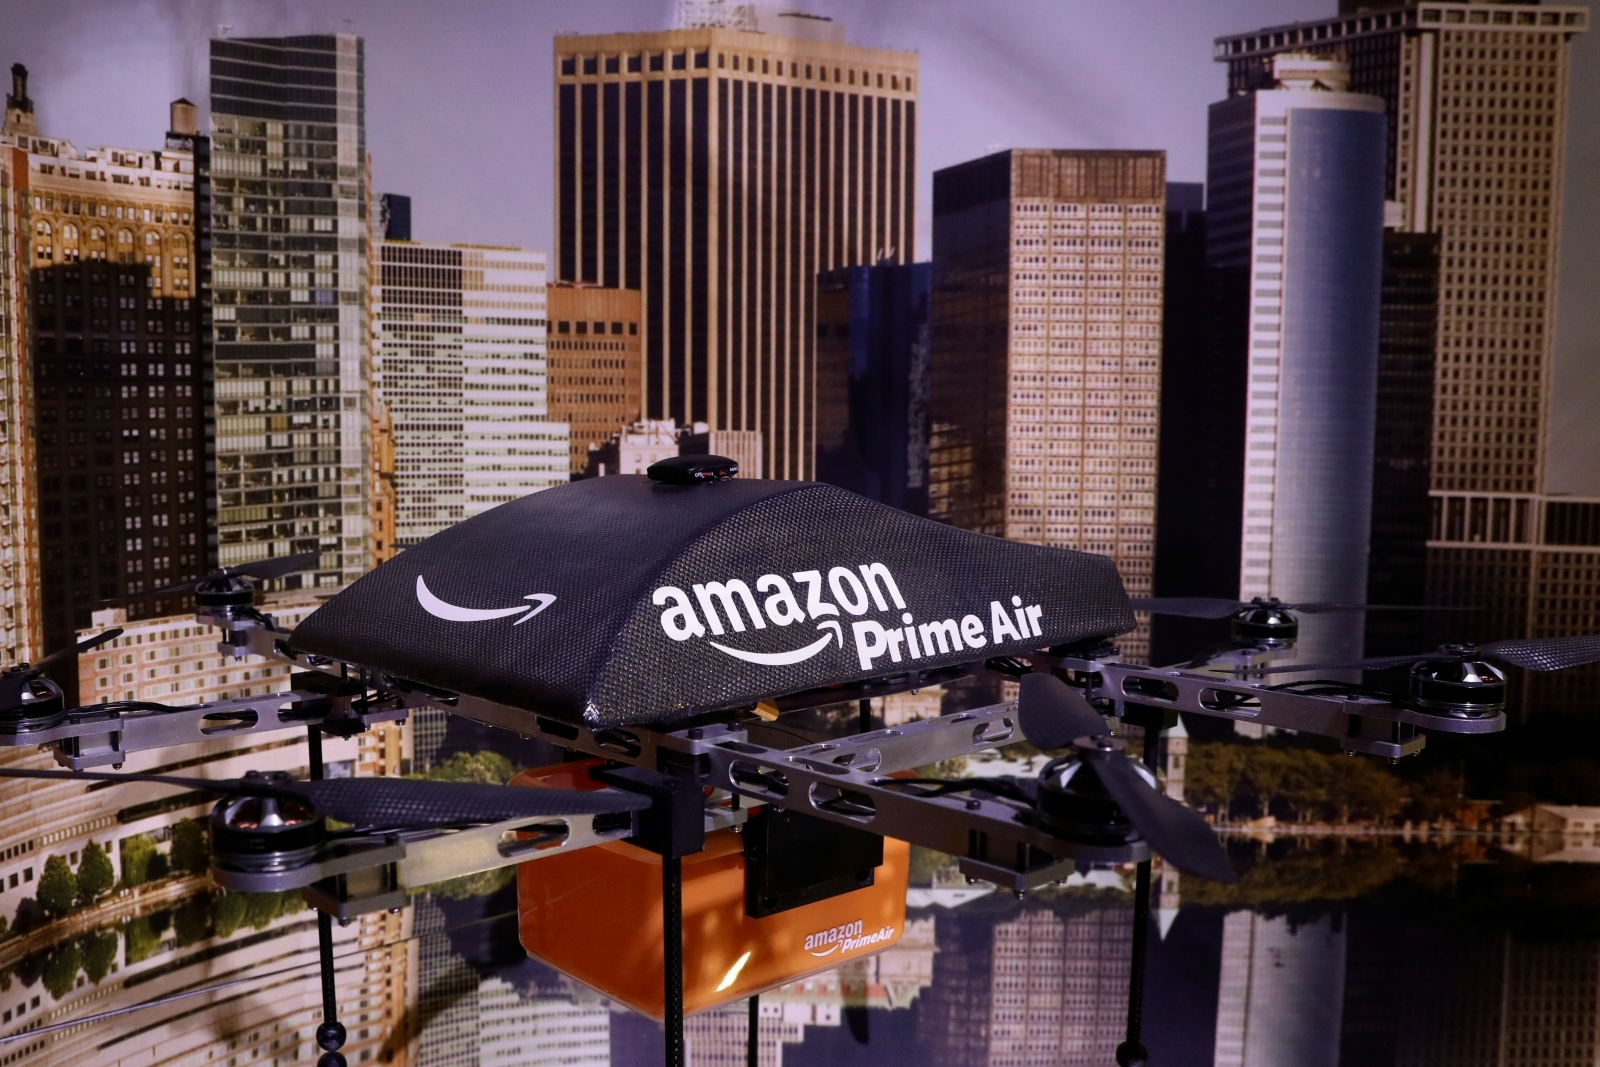 Amazon patent hints at drone stations